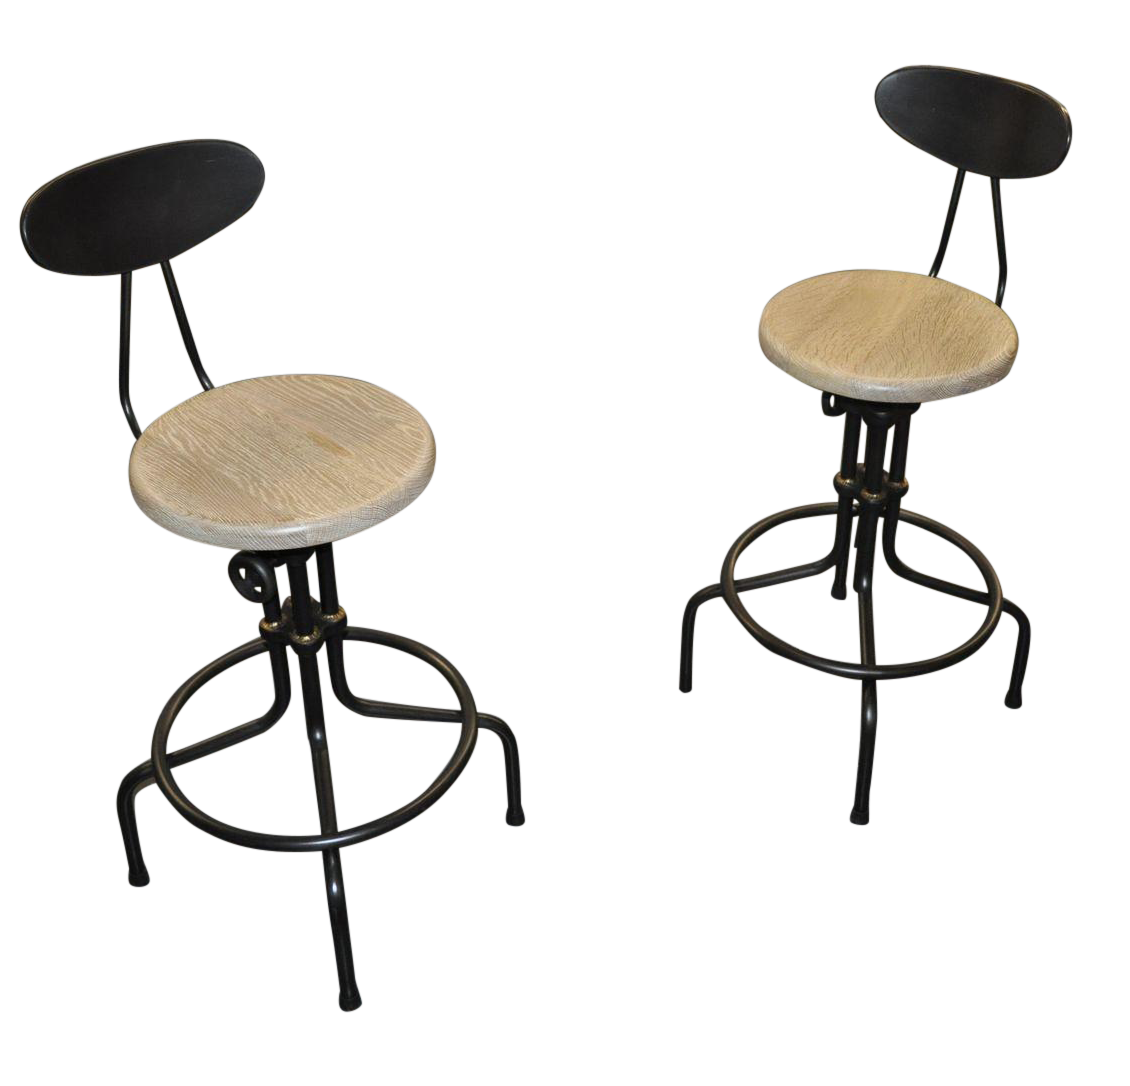 Industrial Style Adjustable Bar Stools Set of 2 Chairish : 84413e71 03c7 4a32 a788 29bc09c03bd4aspectfitampwidth640ampheight640 from www.chairish.com size 640 x 640 jpeg 27kB